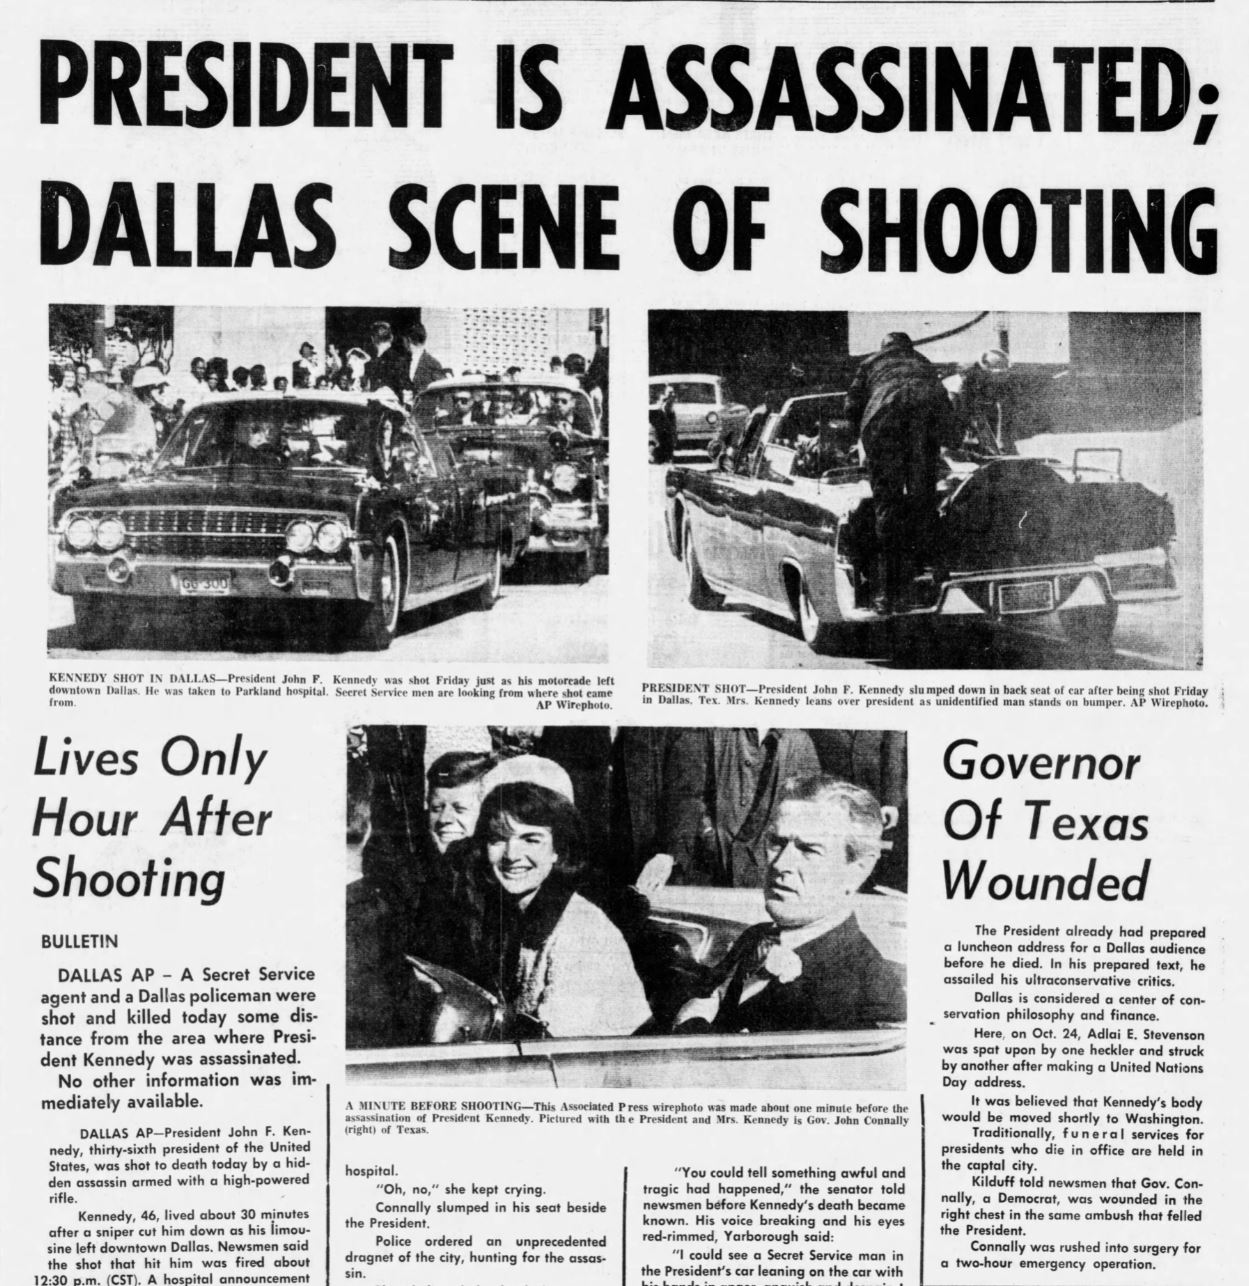 Newspaper coverage of the assassination of President John F. Kennedy (Terre Haute Tribune, via Newspapers.com)